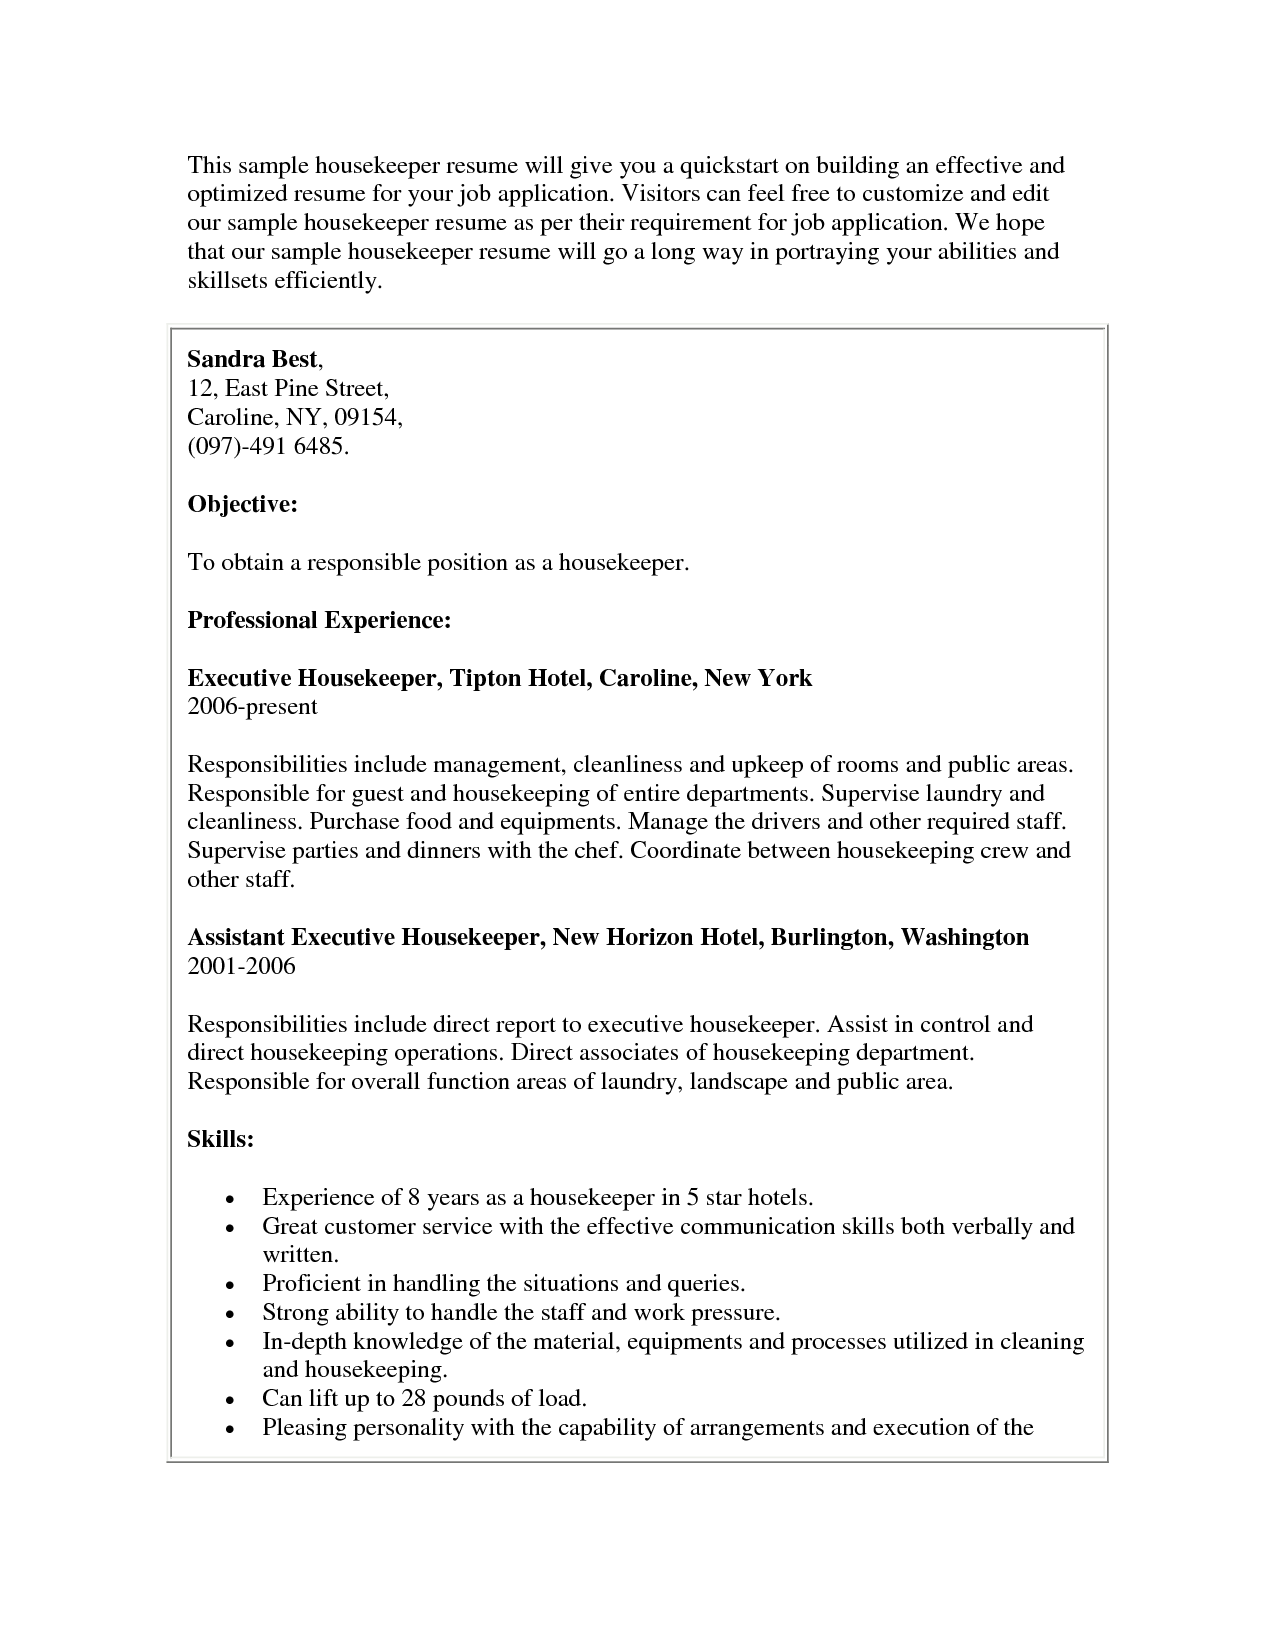 Housekeeper sample housekeeping resume cover letter job home housekeeper sample housekeeping resume cover letter job madrichimfo Gallery